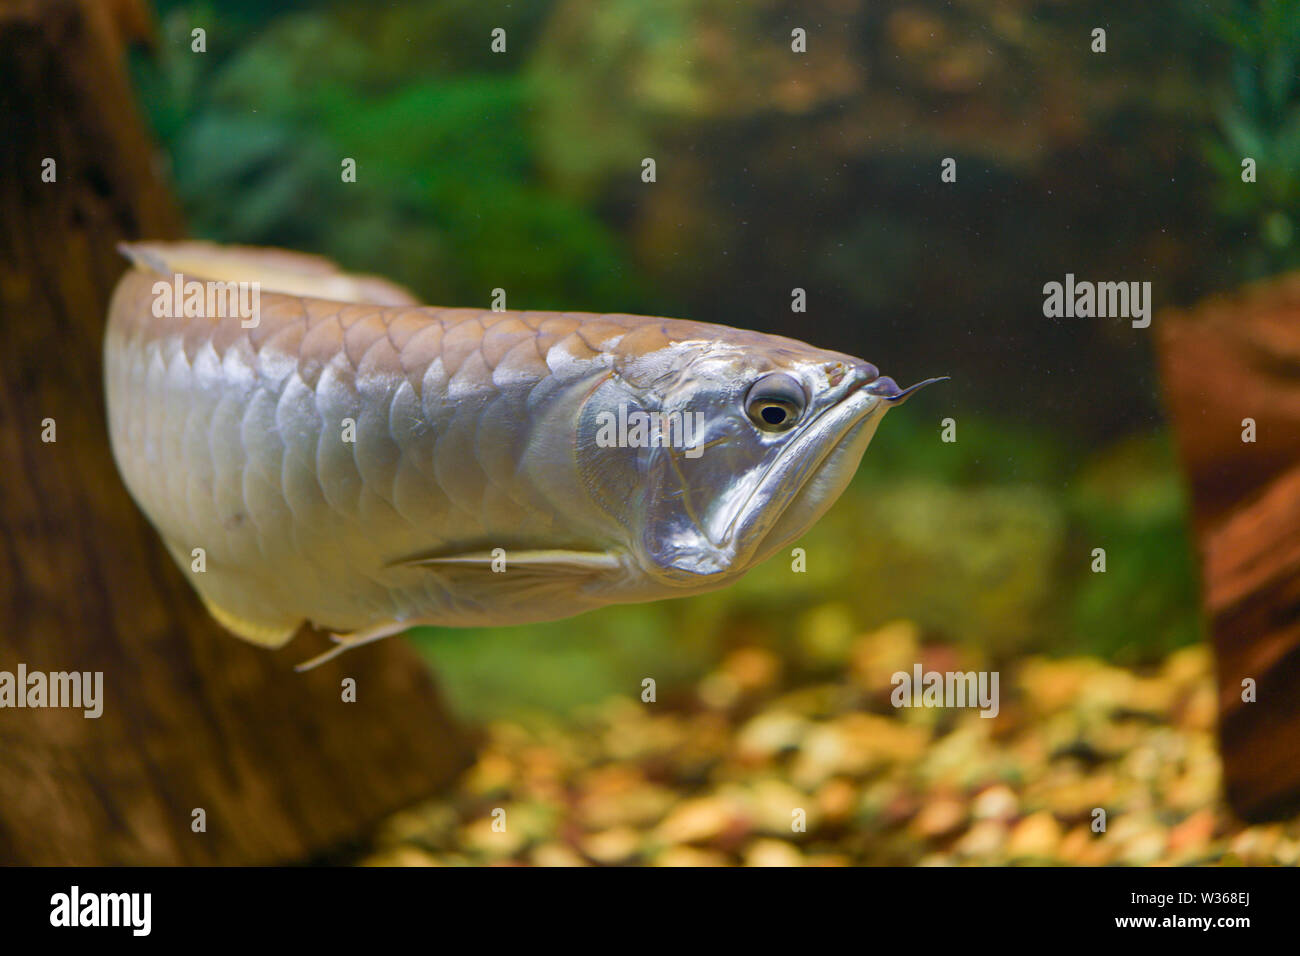 Big silver Arovana fish swims alone in a tank. Horizontal photography - Stock Image